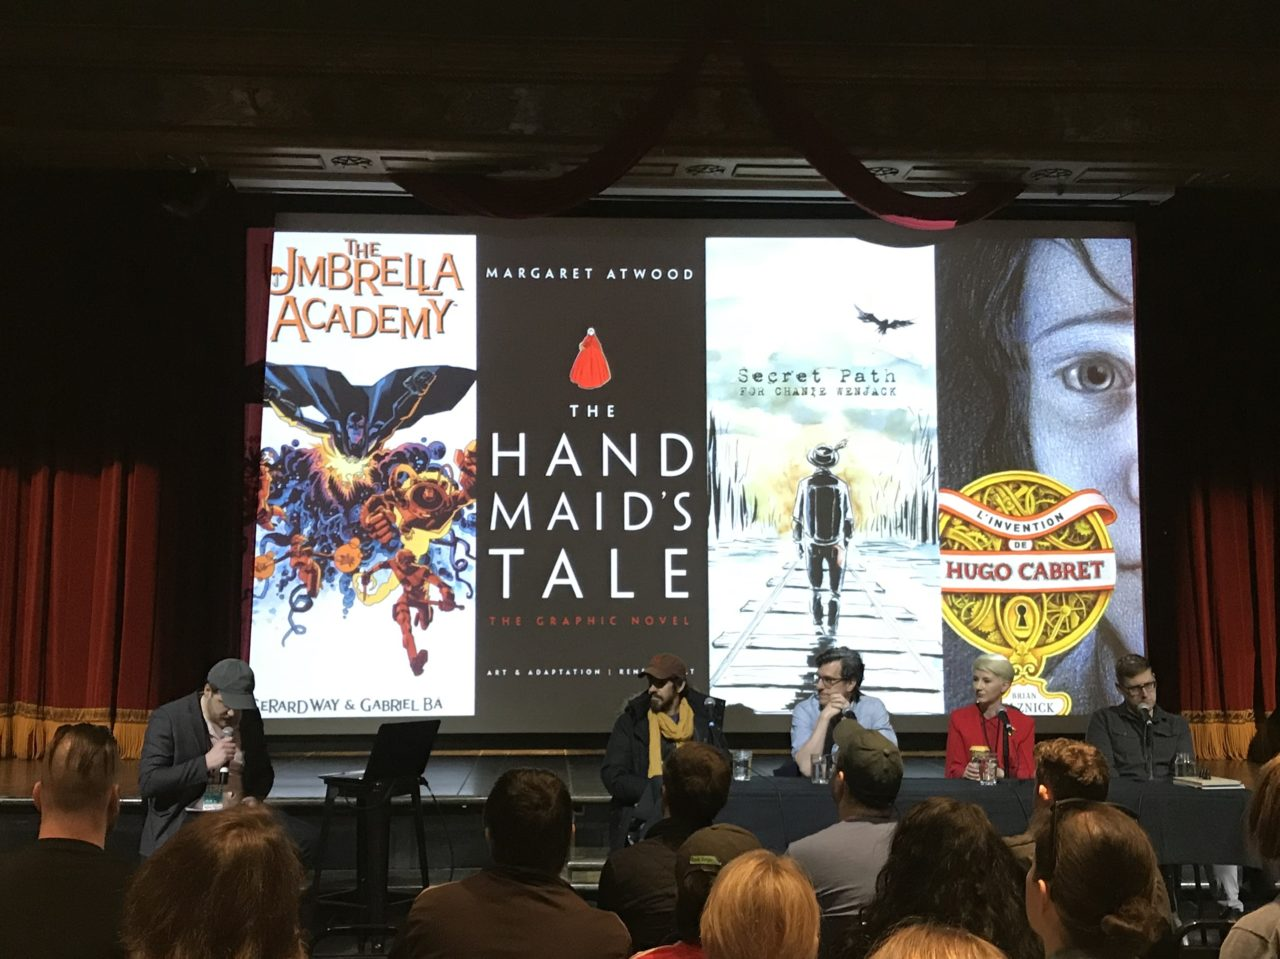 TCAF 2019 Page to Screen Panel. Featuring Gabriel Bá, Brian Sleznick, Renee Nault, and Jeff Lemire. Photo by Louis Skye.